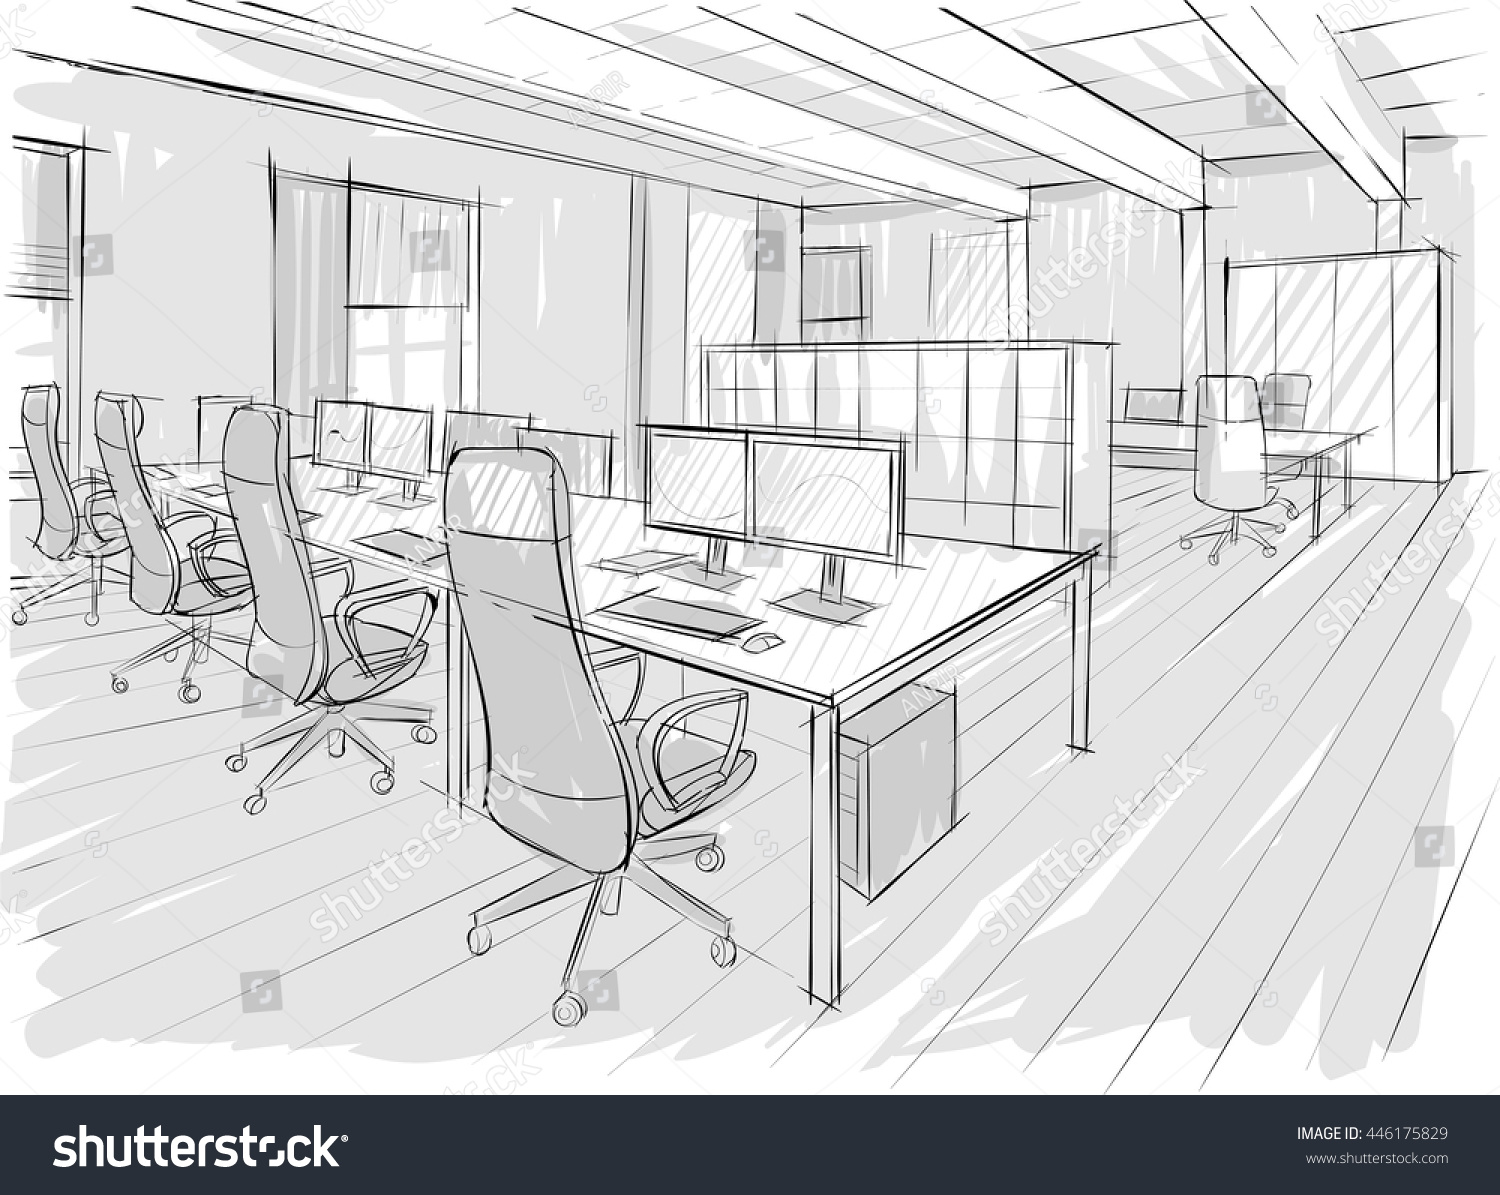 Drawing Lines In Office : Architectural sketch office drawing stock vector